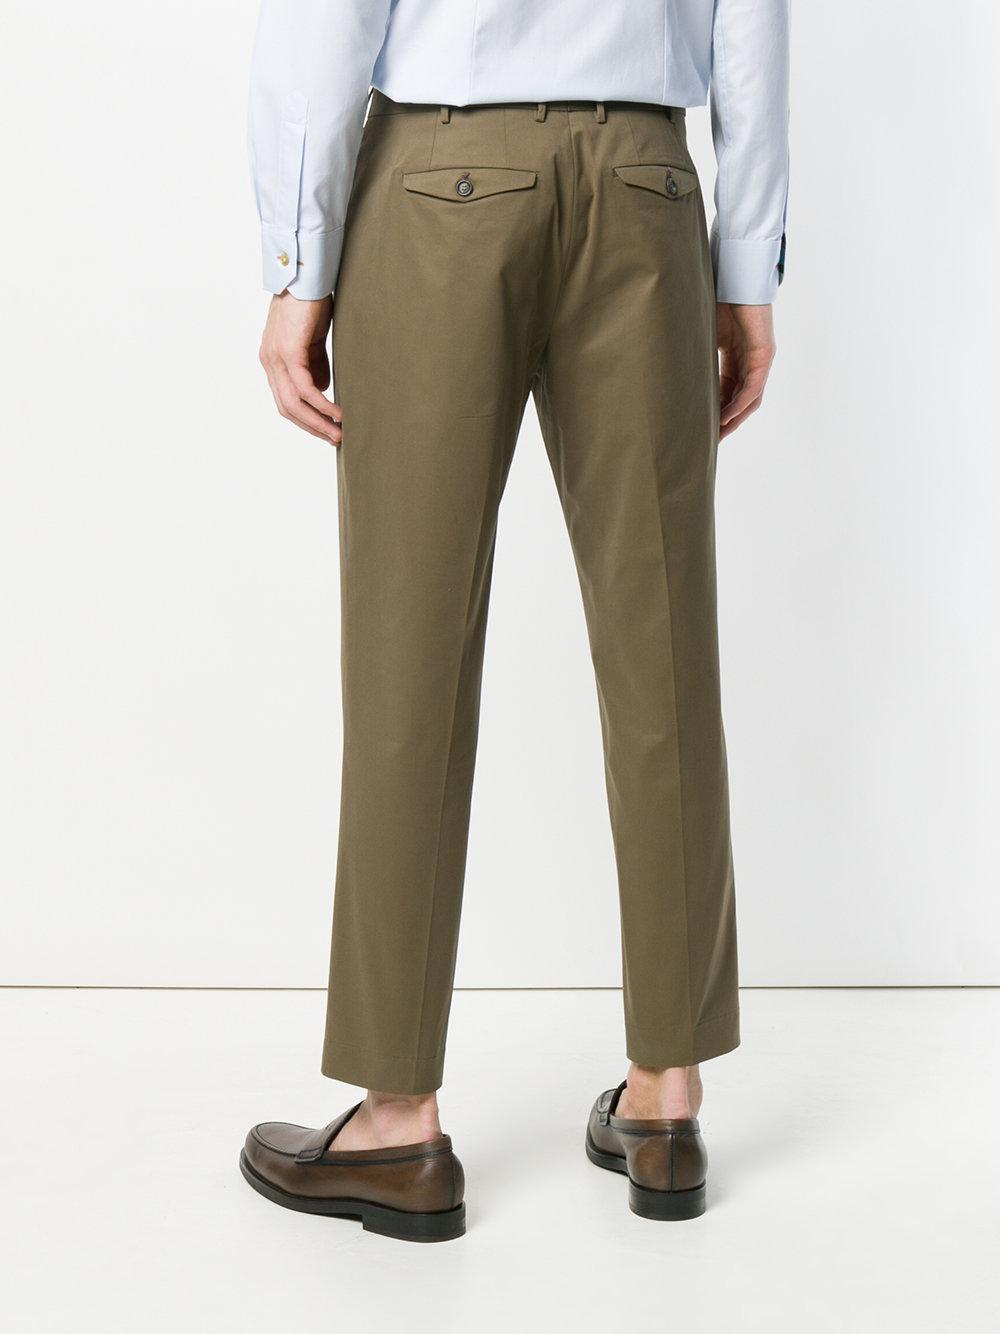 High Quality Cheap Price Cheap Sale Official Site cropped chinos - Green Dell'Oglio Quality Outlet Store Inexpensive Online Ai1MM